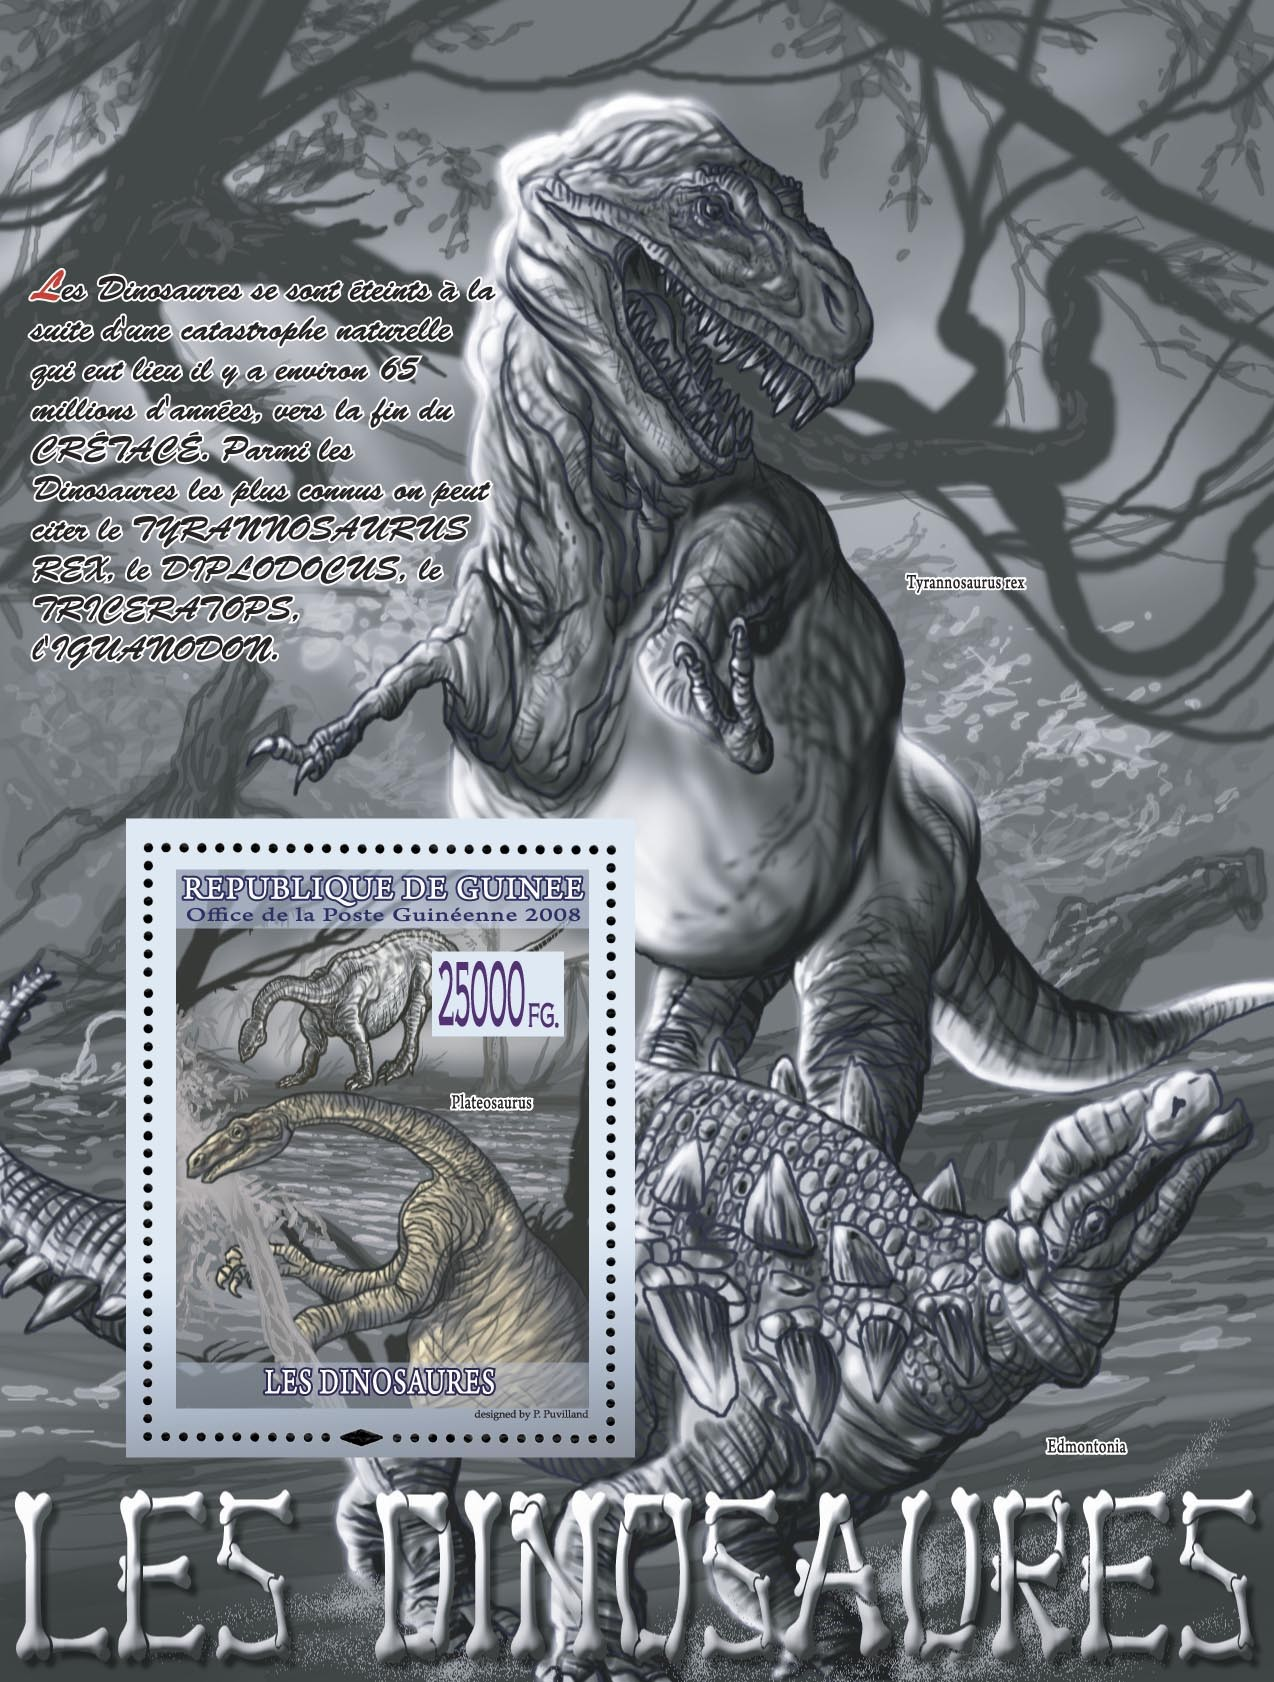 Plateosaurus ( Tyrannosaurus rex ) - Issue of Guinée postage stamps